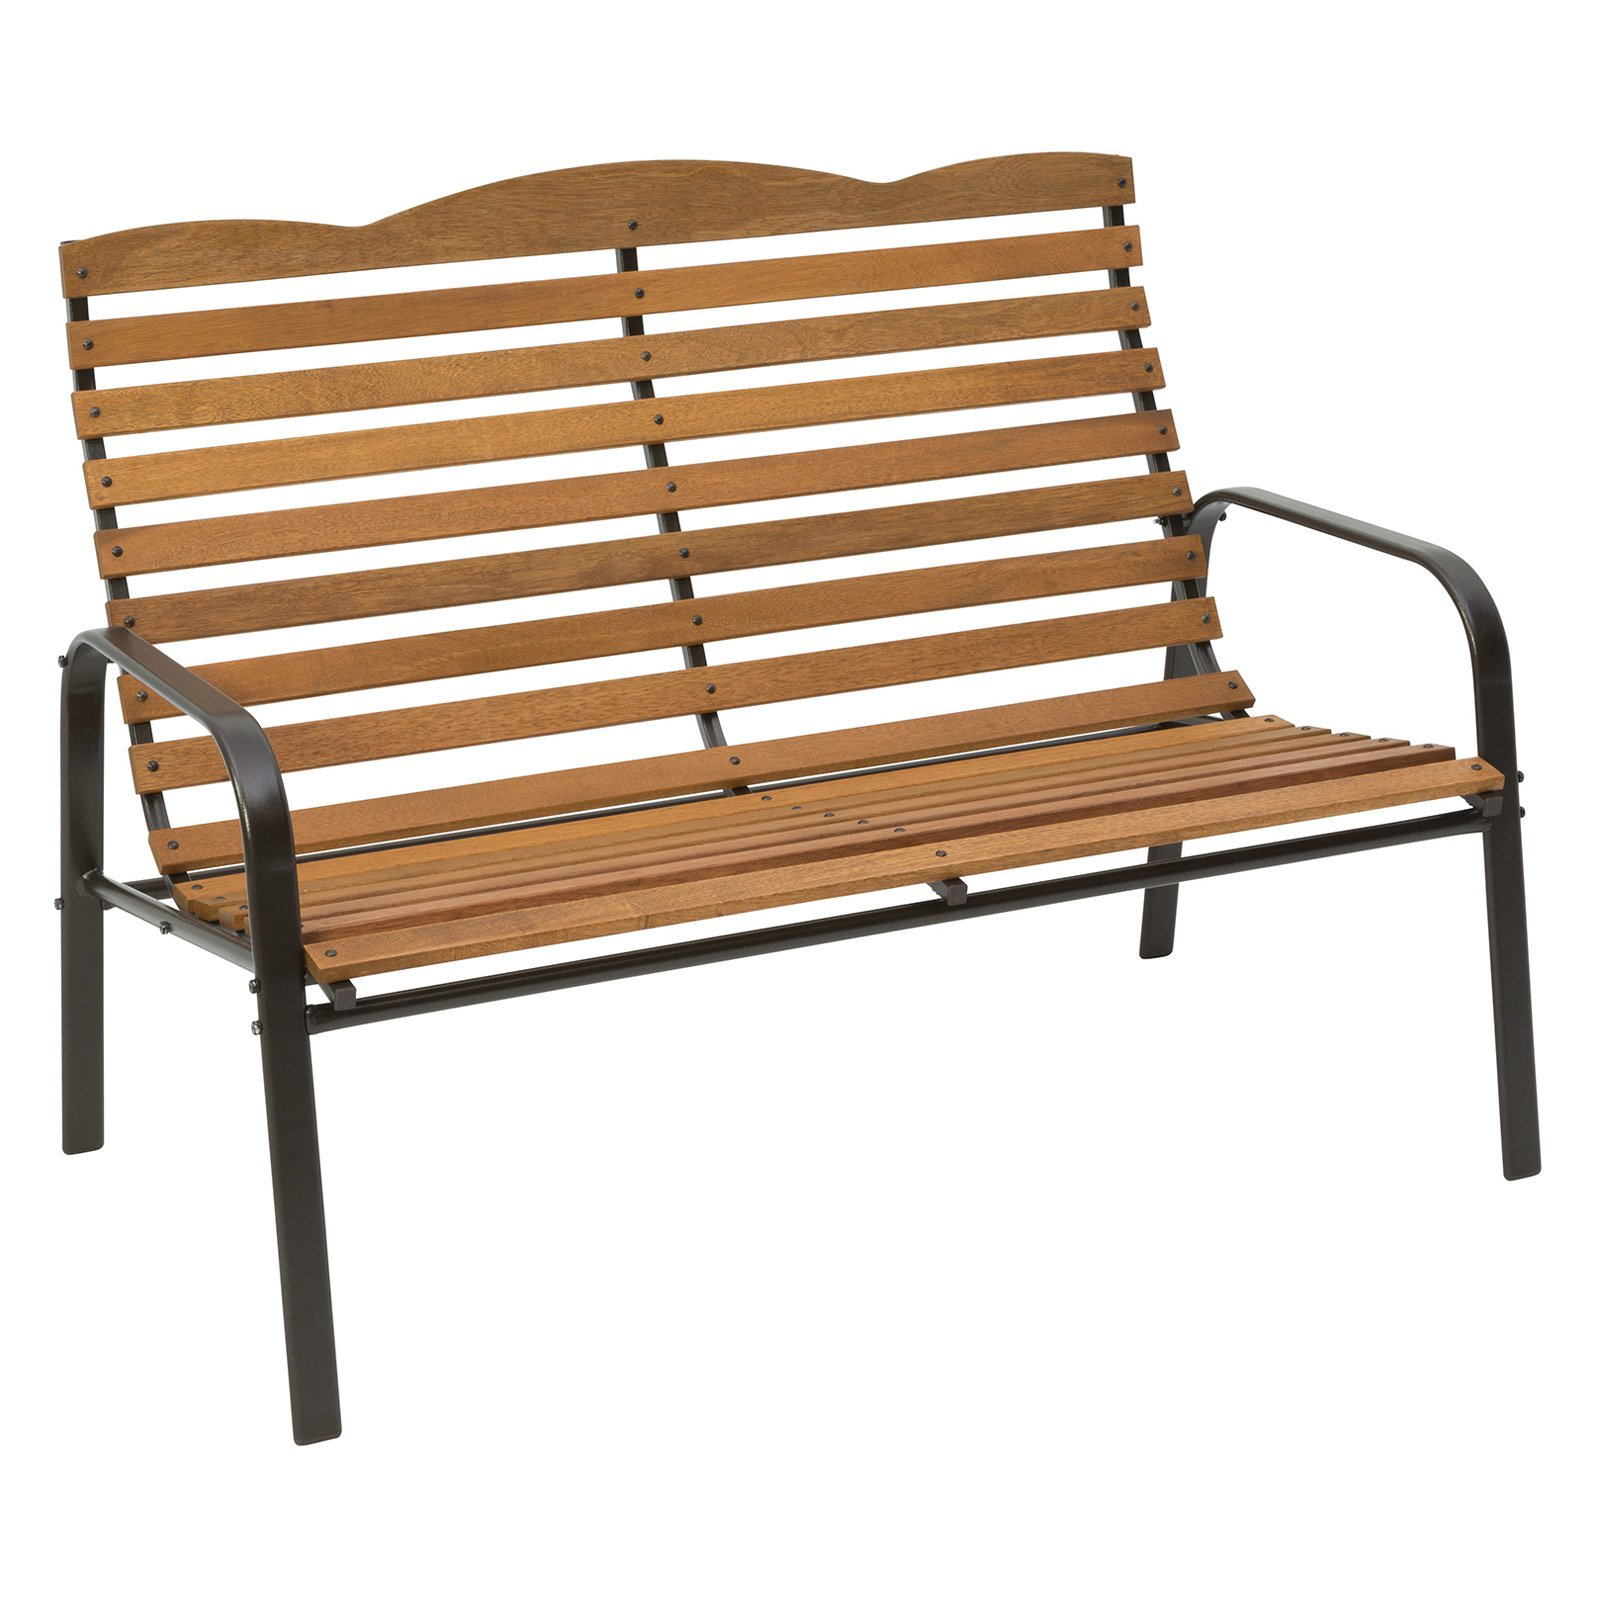 "Jack Post CG-48Z-JE Slotted Hardwood Bench, 71.75"" x 28.75"" x 36.75"""